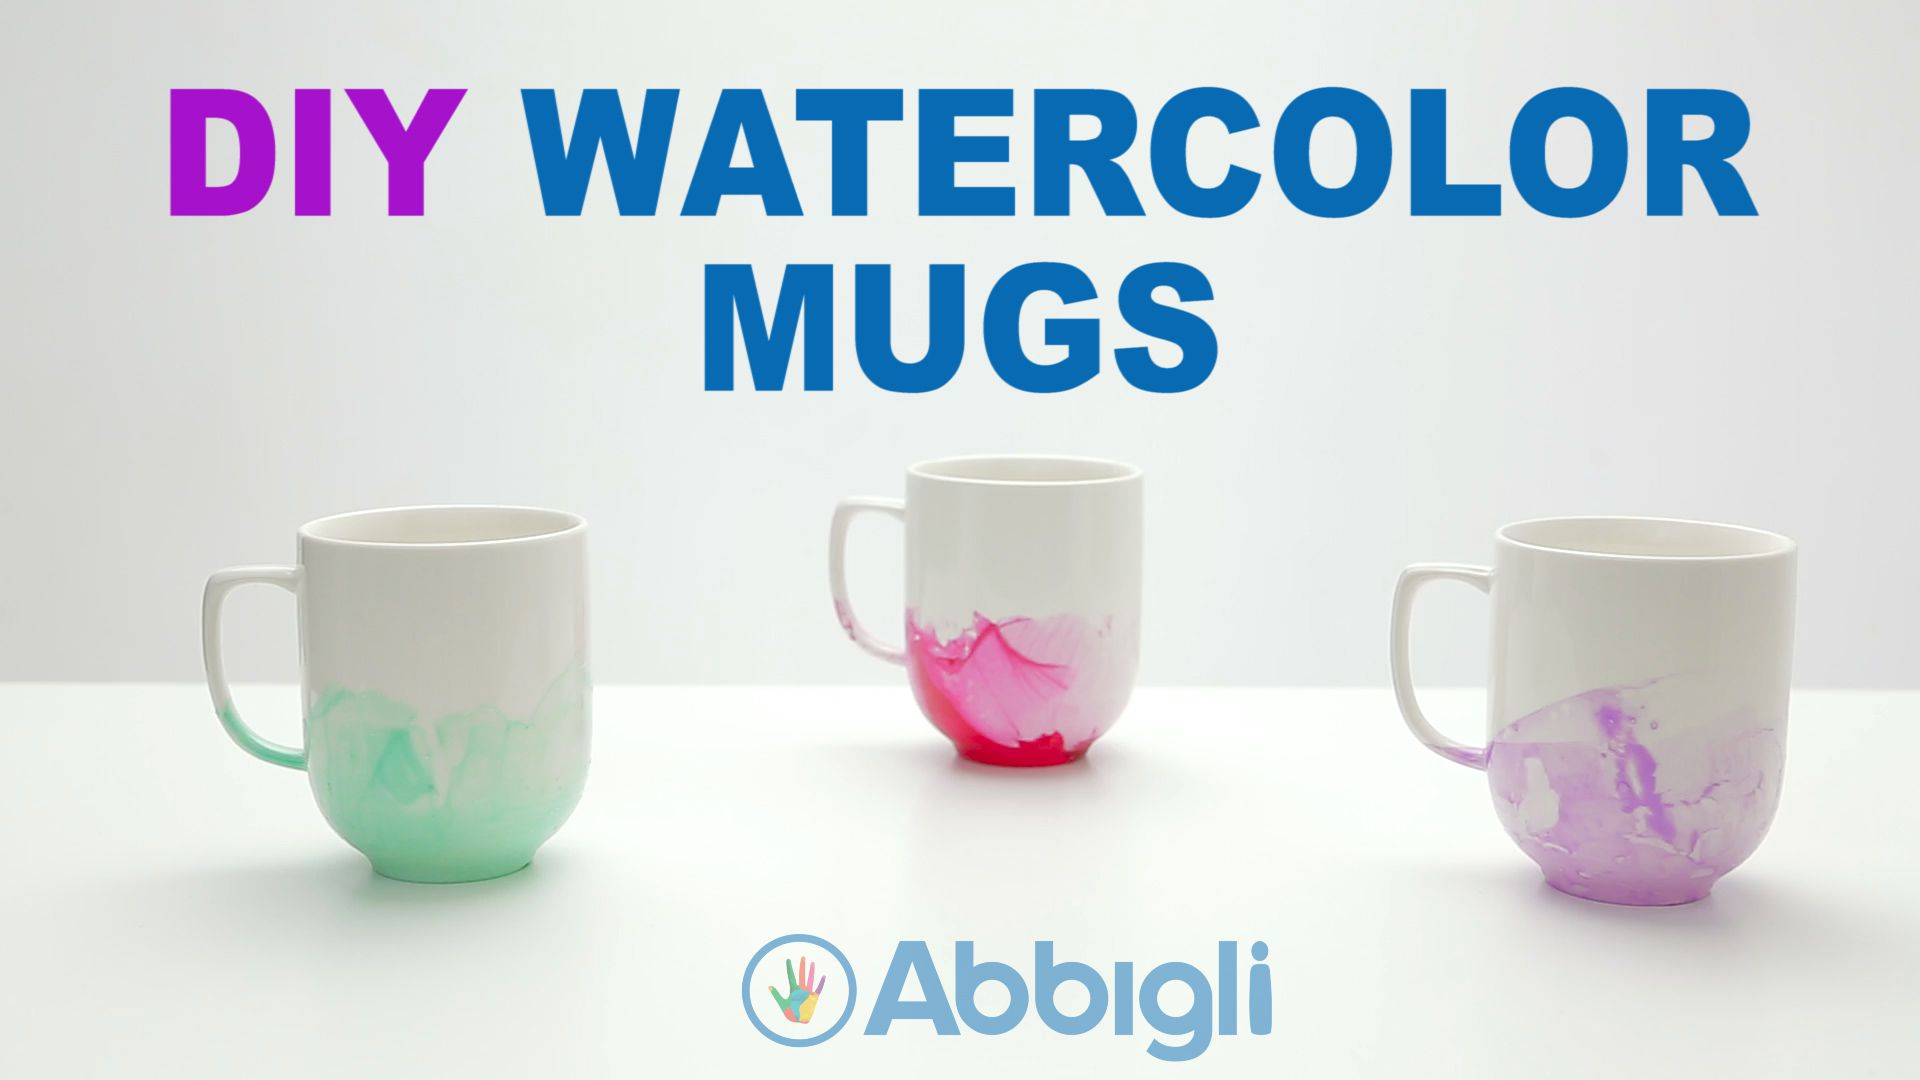 kitchen modernart abbihome giftideas diycupdecor unusualmugs